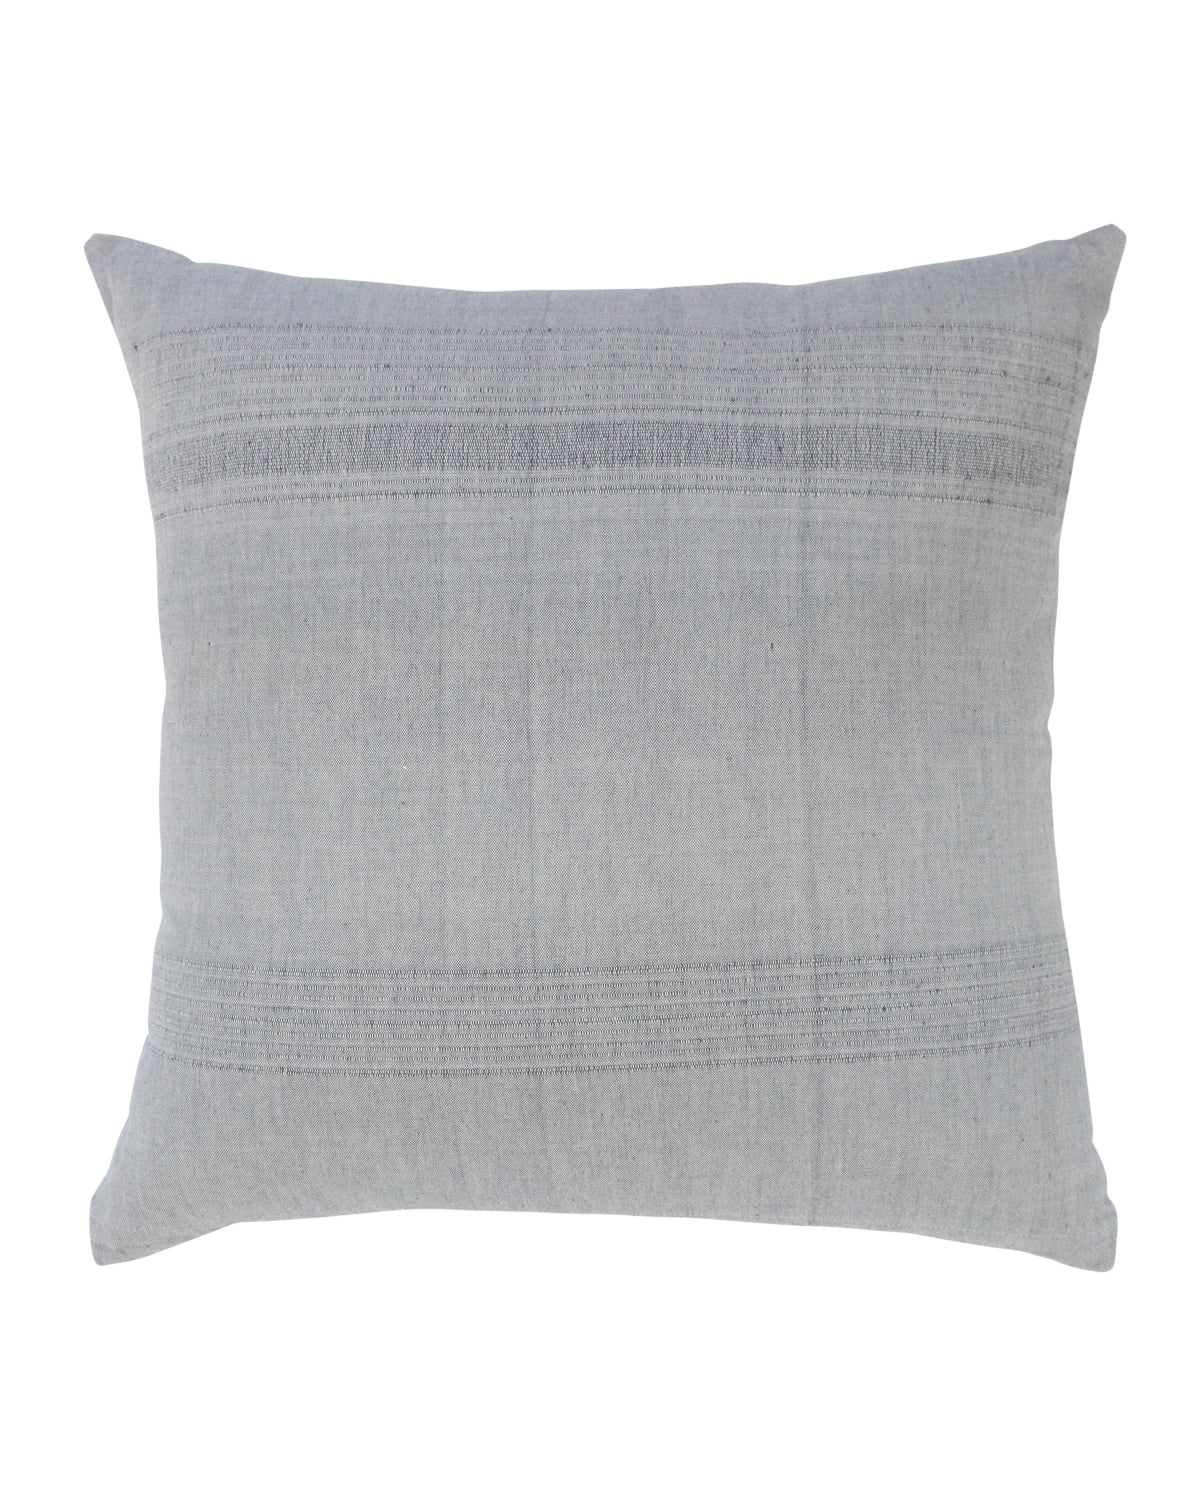 Gizi Pillow